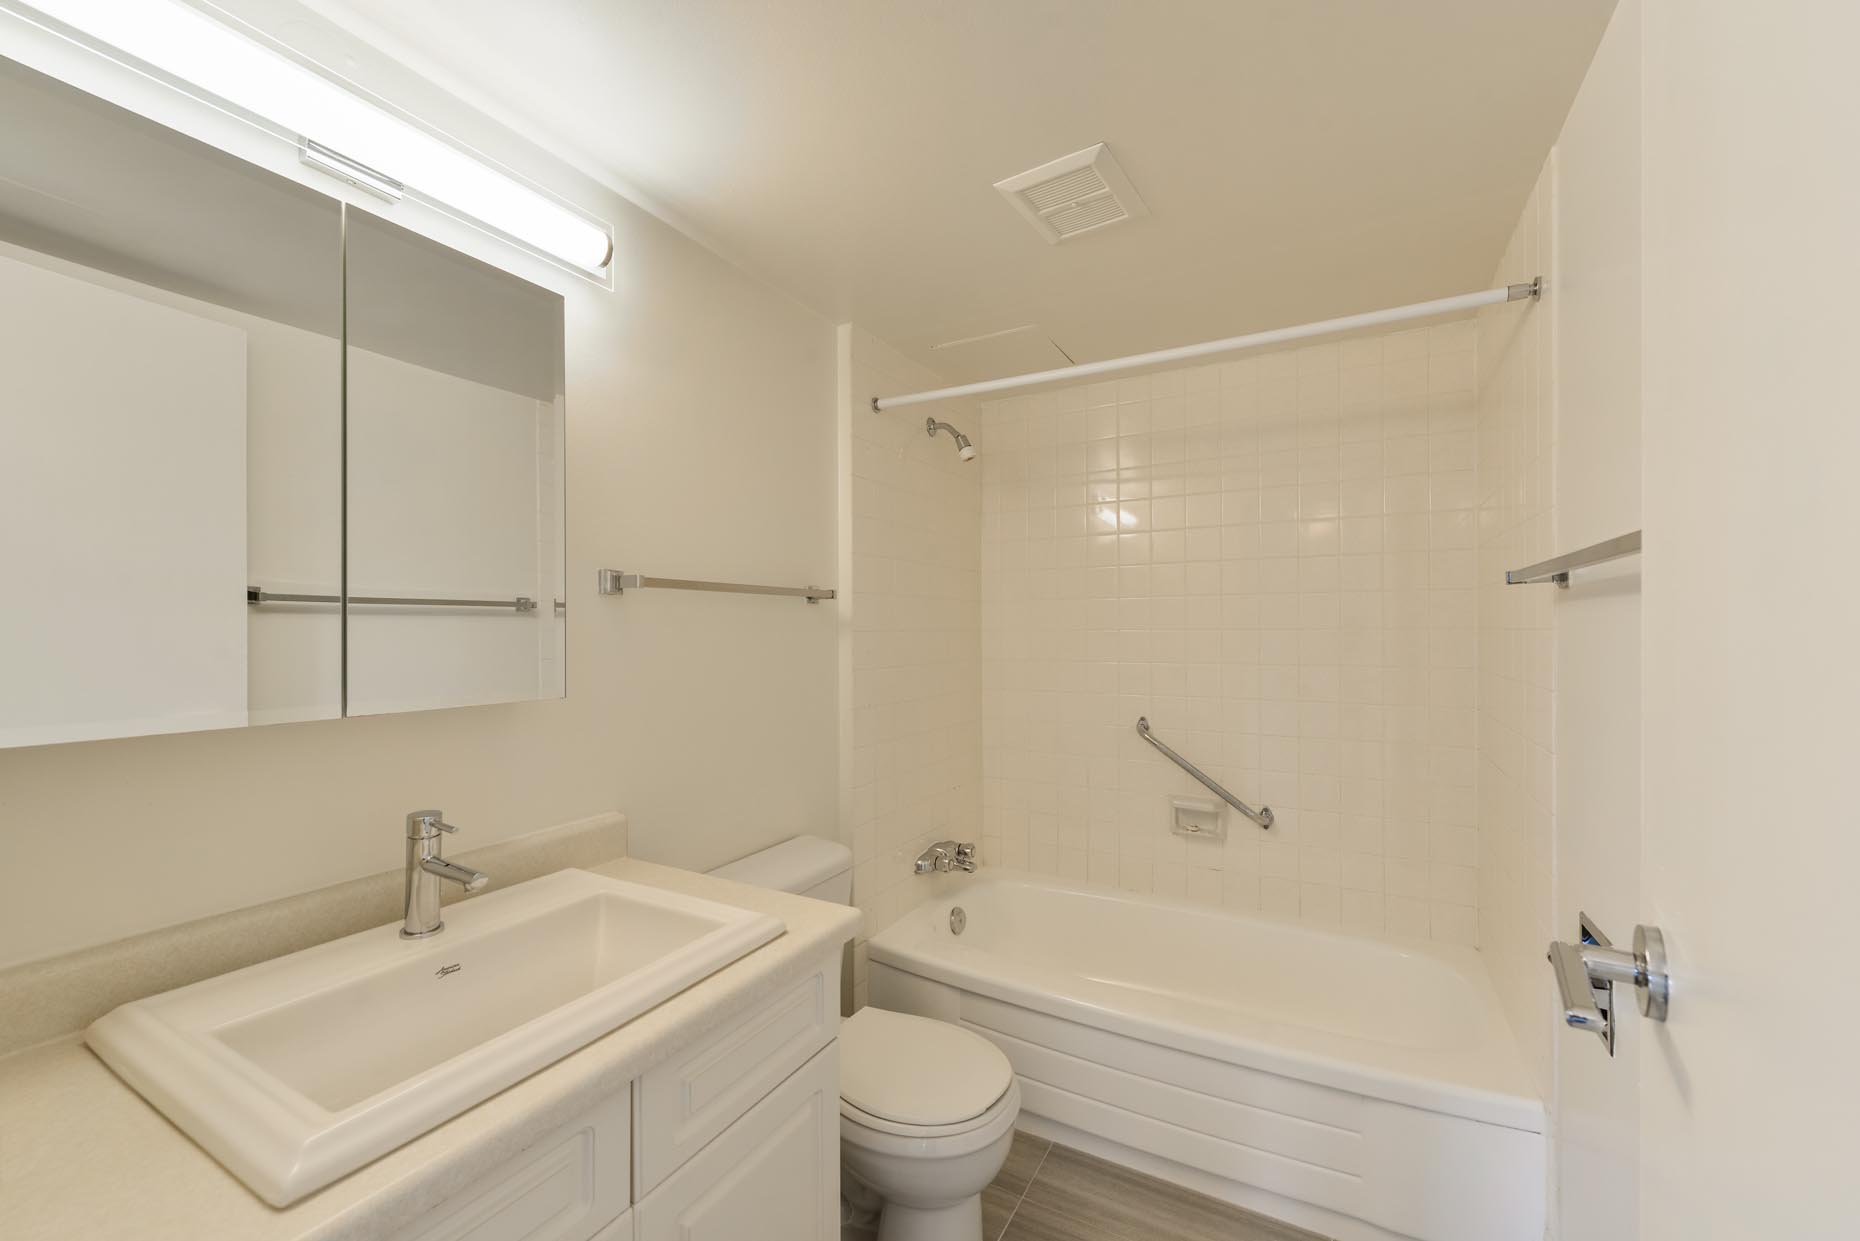 Bathroom in a classic apartment suite at Viking Arms in Edmonton